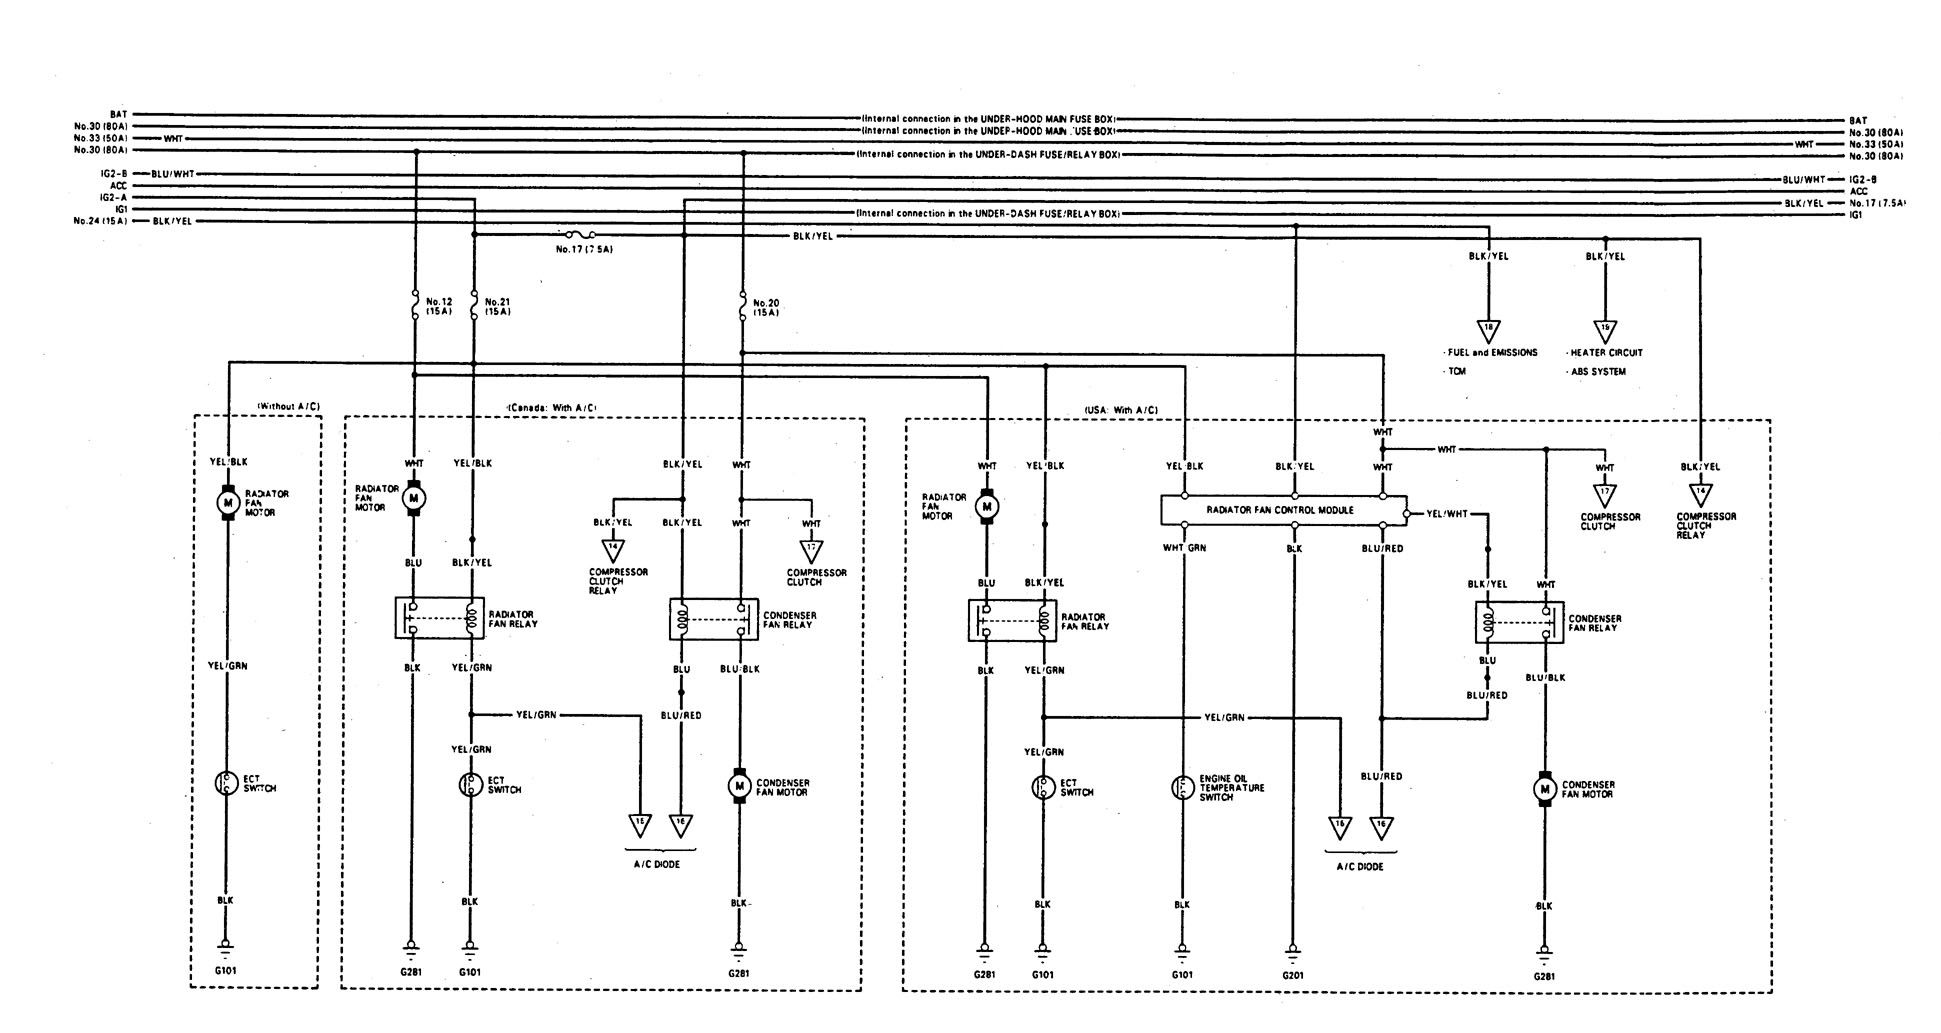 acura integra wiring diagram cooling fans 1993 acura integra (1993) wiring diagrams cooling fans carknowledge acura integra wiring diagram at honlapkeszites.co